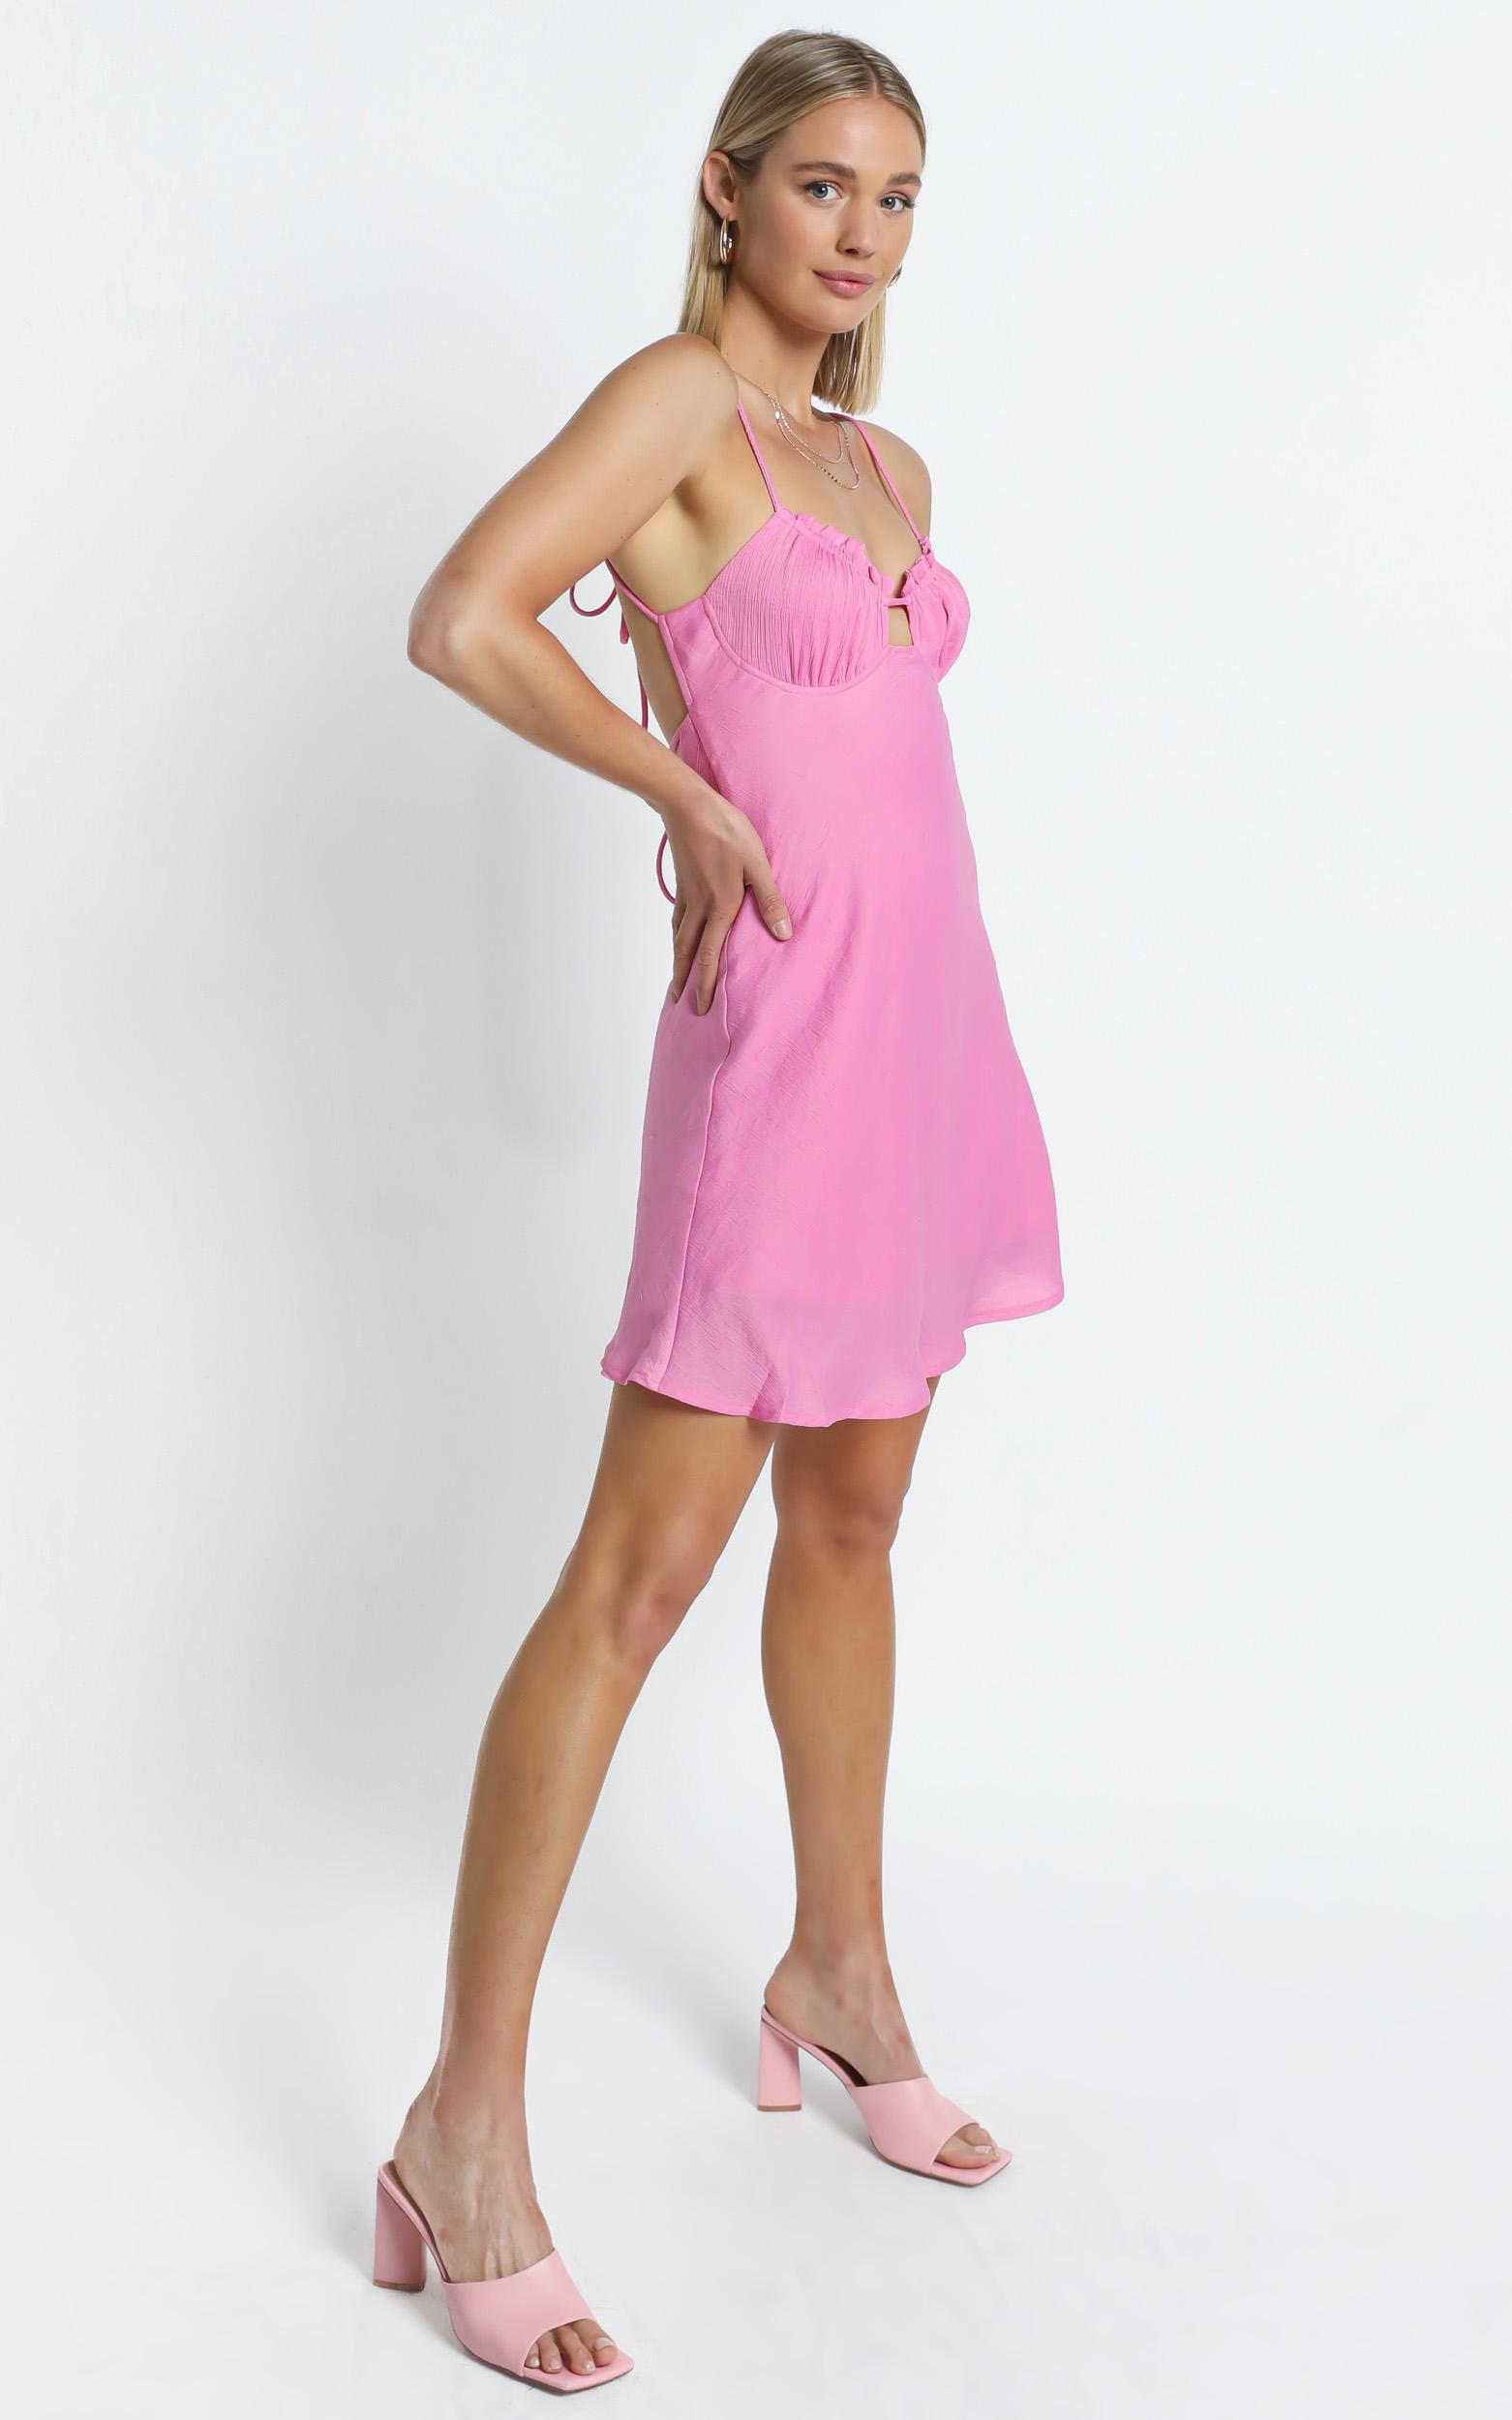 Tilbury Dress in Pink - 6 (XS), Pink, hi-res image number null